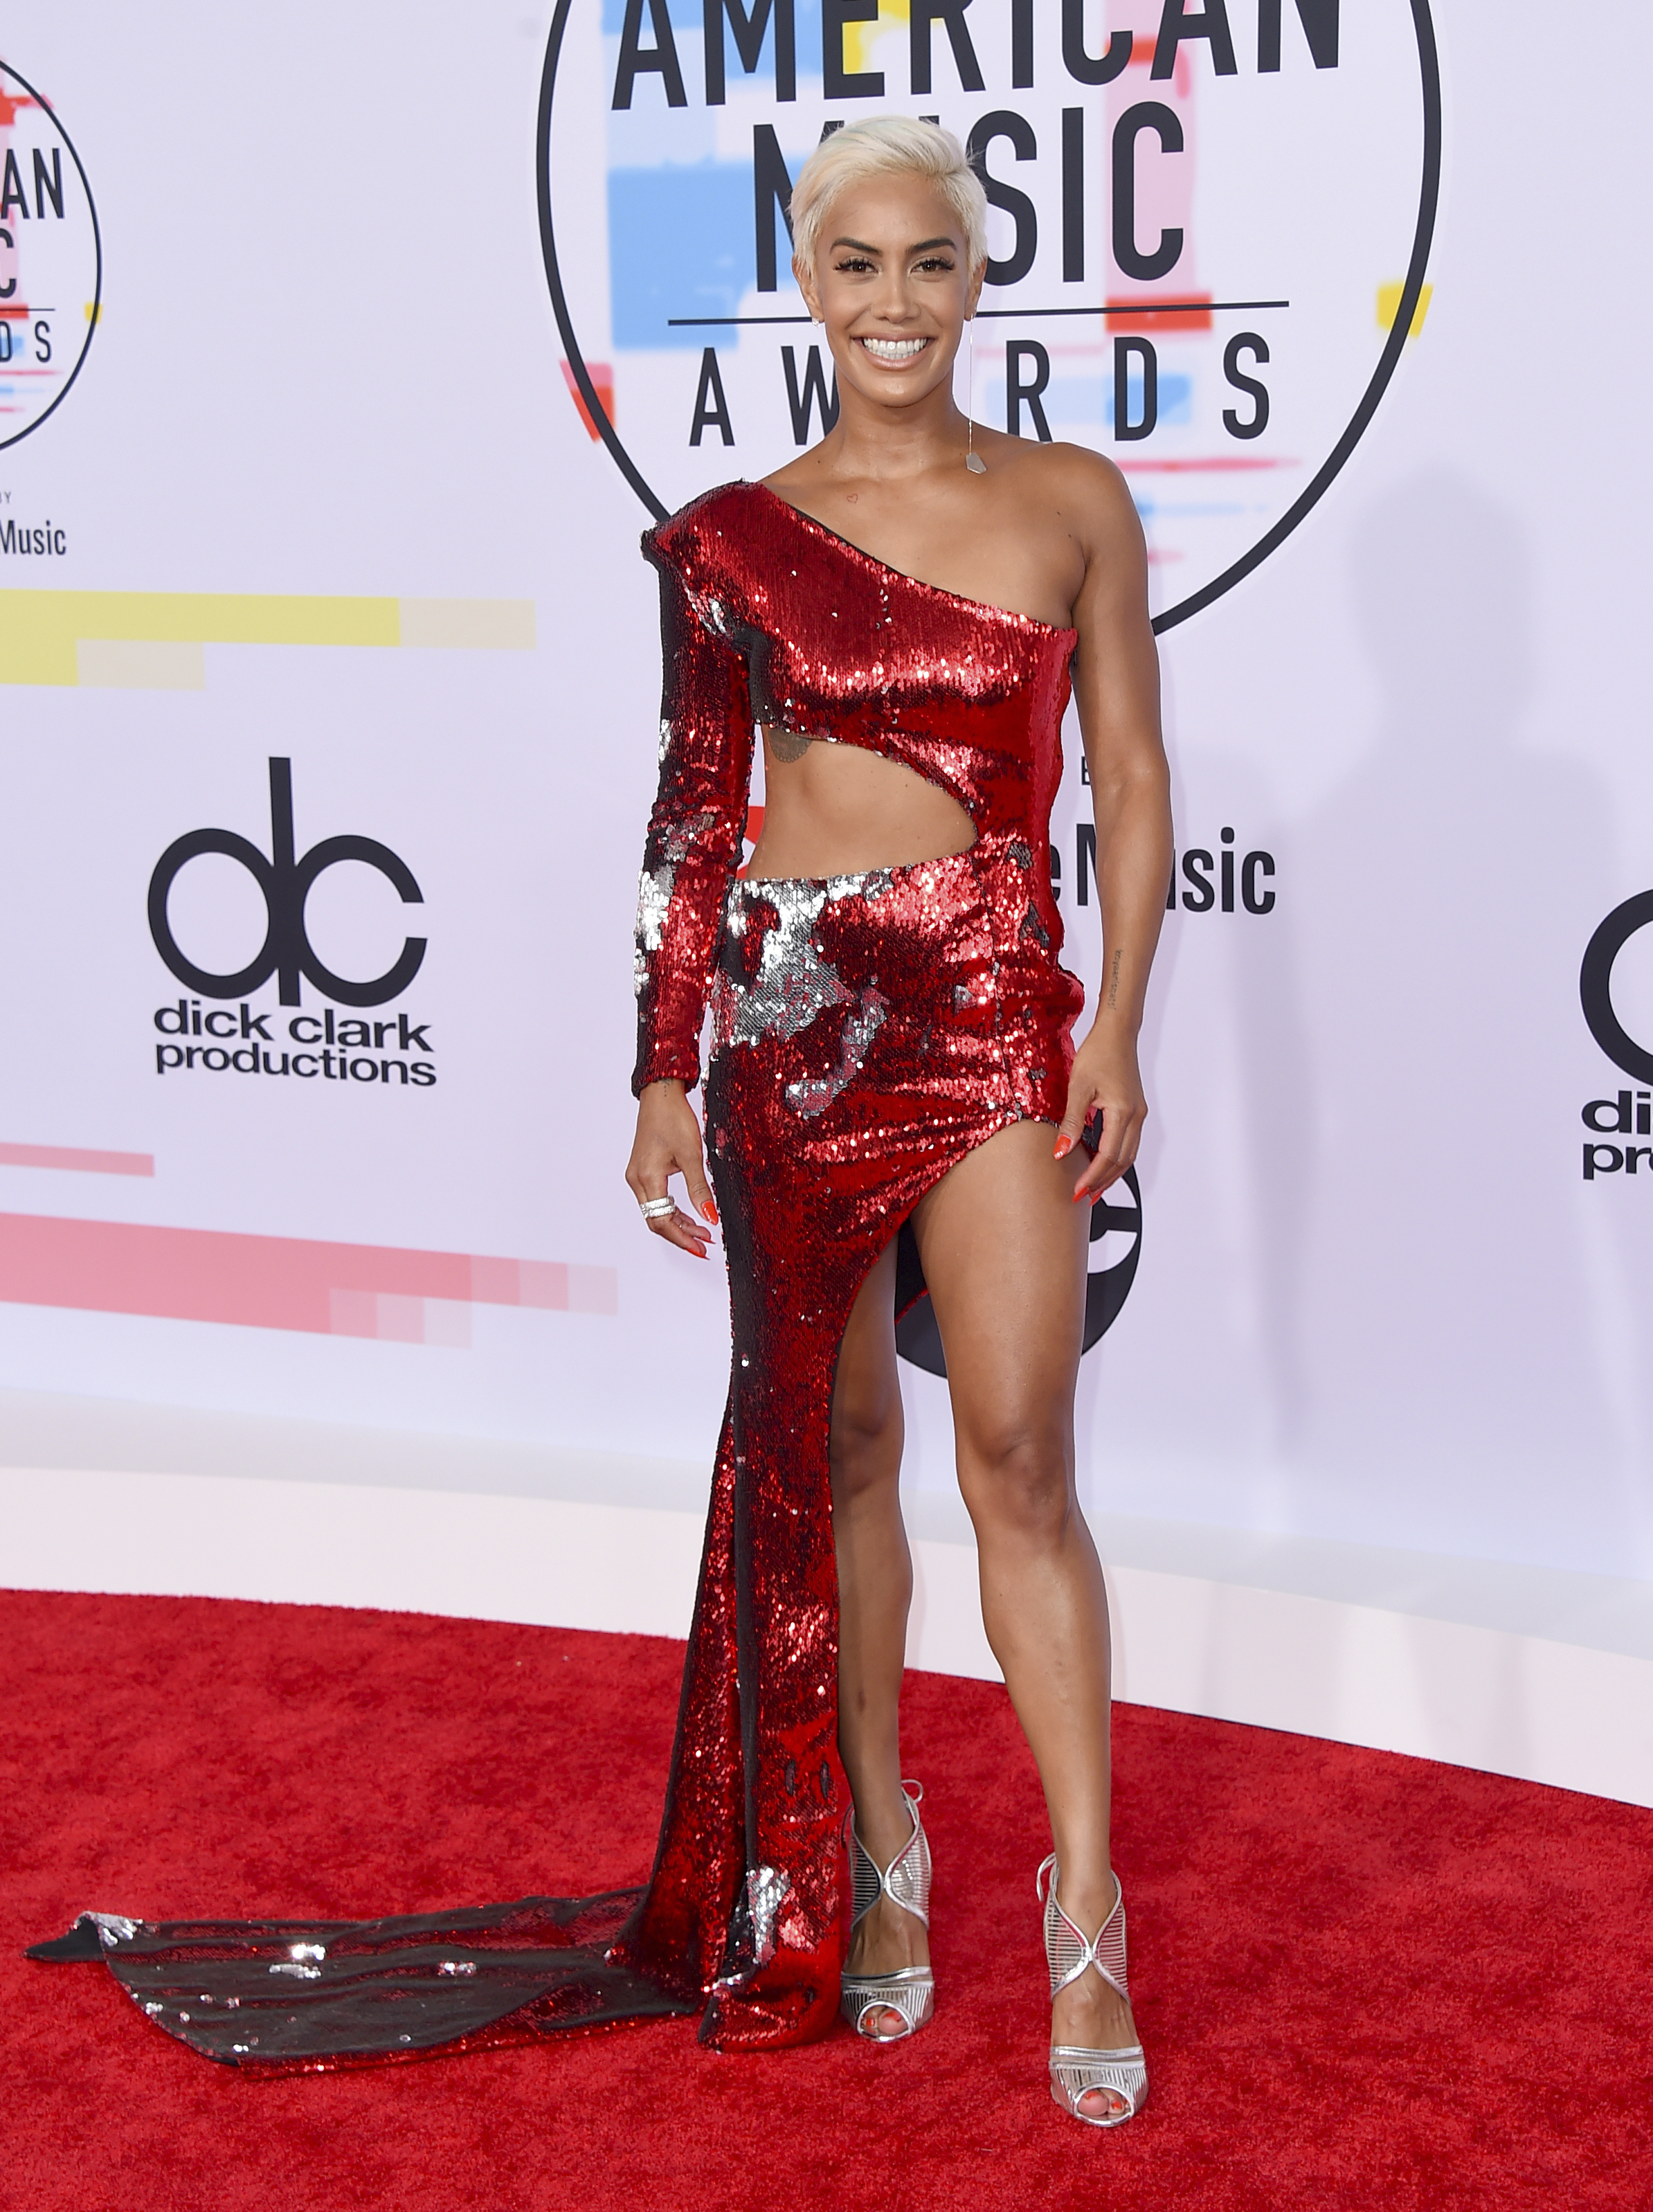 "<div class=""meta image-caption""><div class=""origin-logo origin-image ap""><span>AP</span></div><span class=""caption-text"">Sibley Scoles arrives at the American Music Awards on Tuesday, Oct. 9, 2018, at the Microsoft Theater in Los Angeles. (Jordan Strauss/Invision/AP)</span></div>"